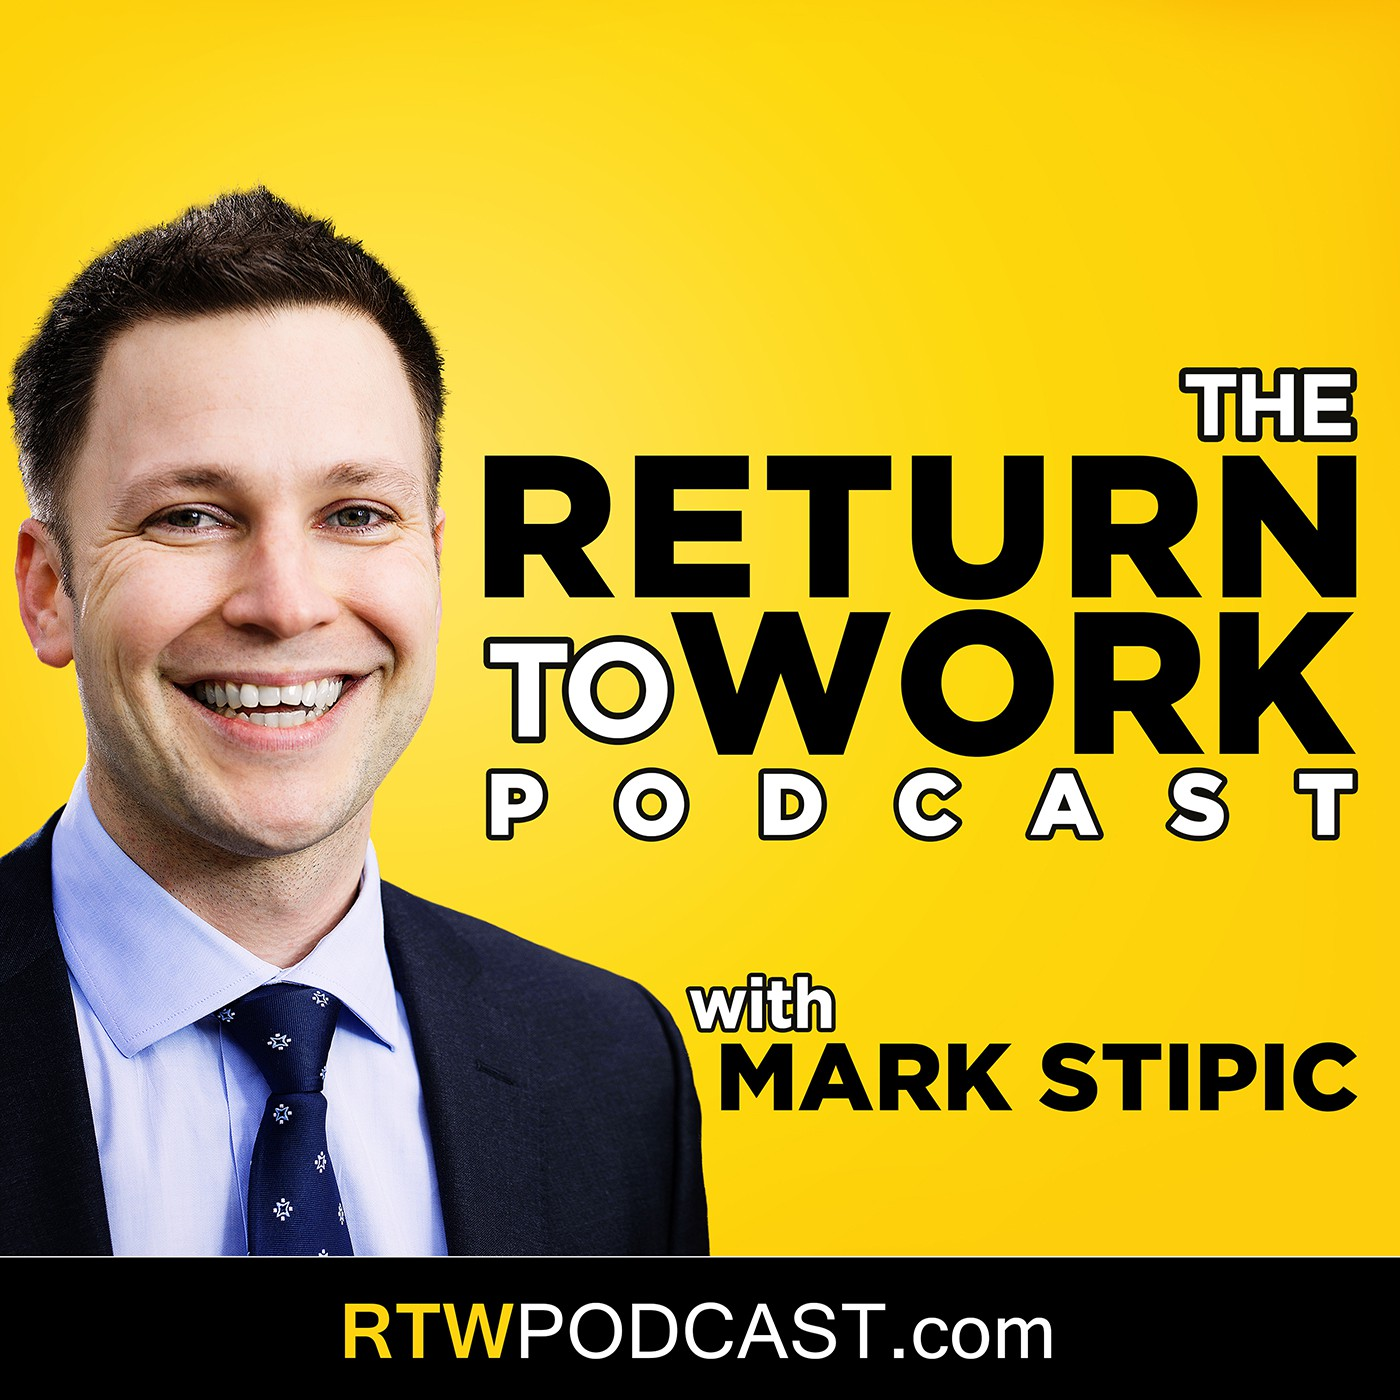 Podcast logo / iTunes cover art: The Return To Work Podcast